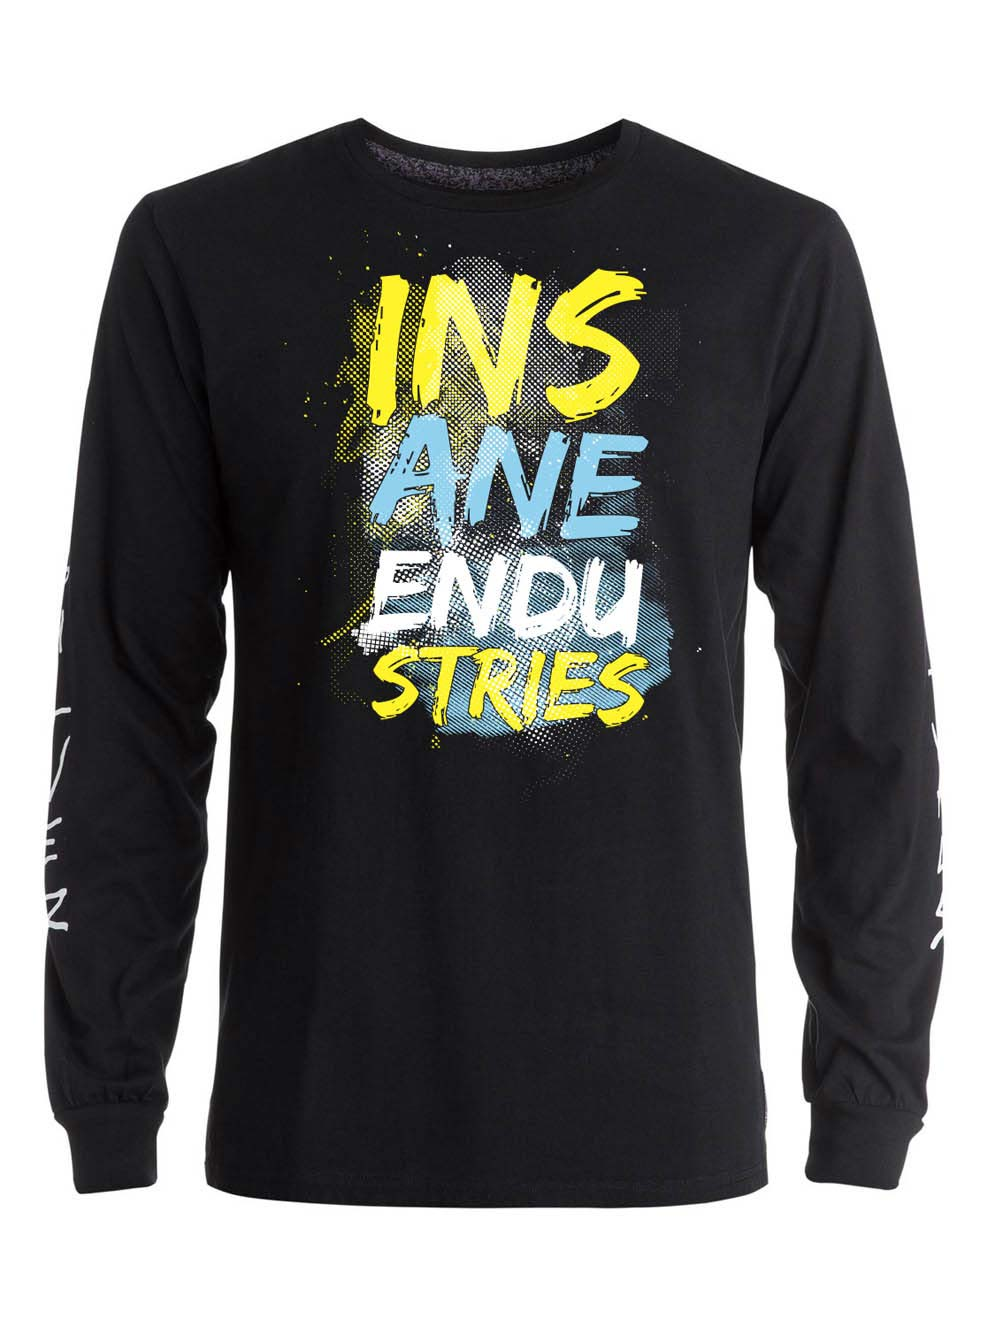 Apparel Design | Insane Endustries - Long Sleeve